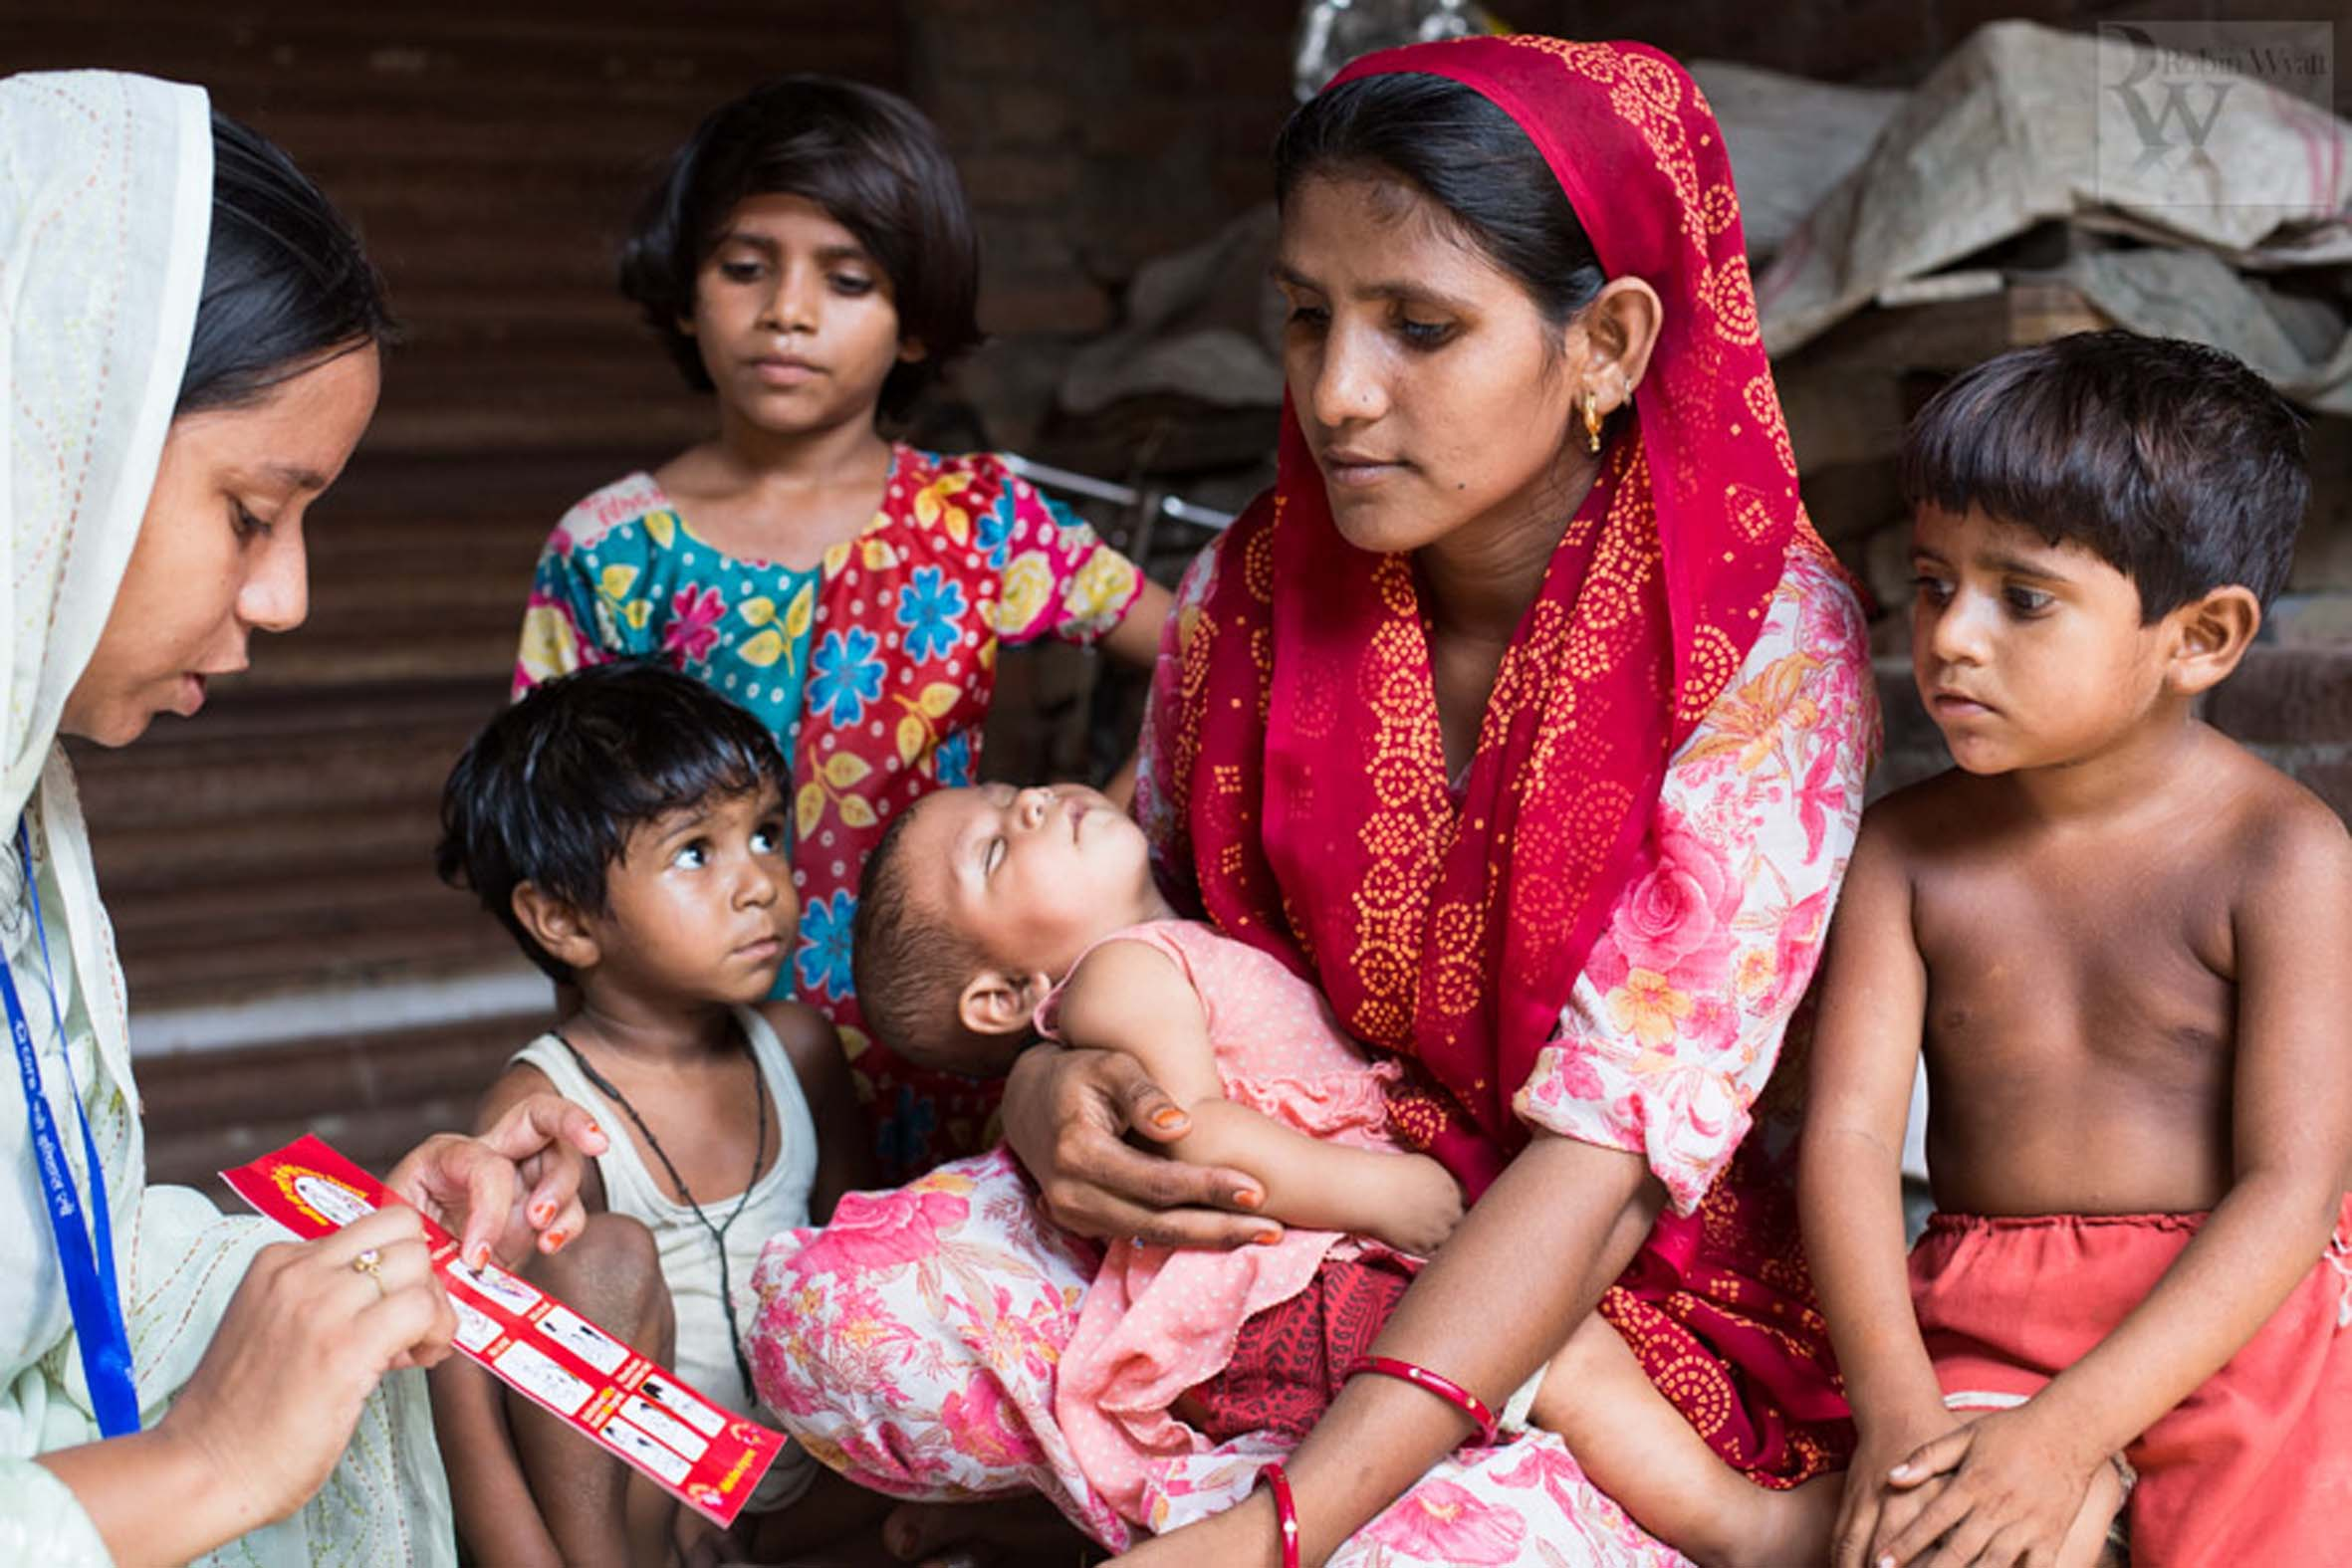 Nineteen million Indian have more than 7 child births